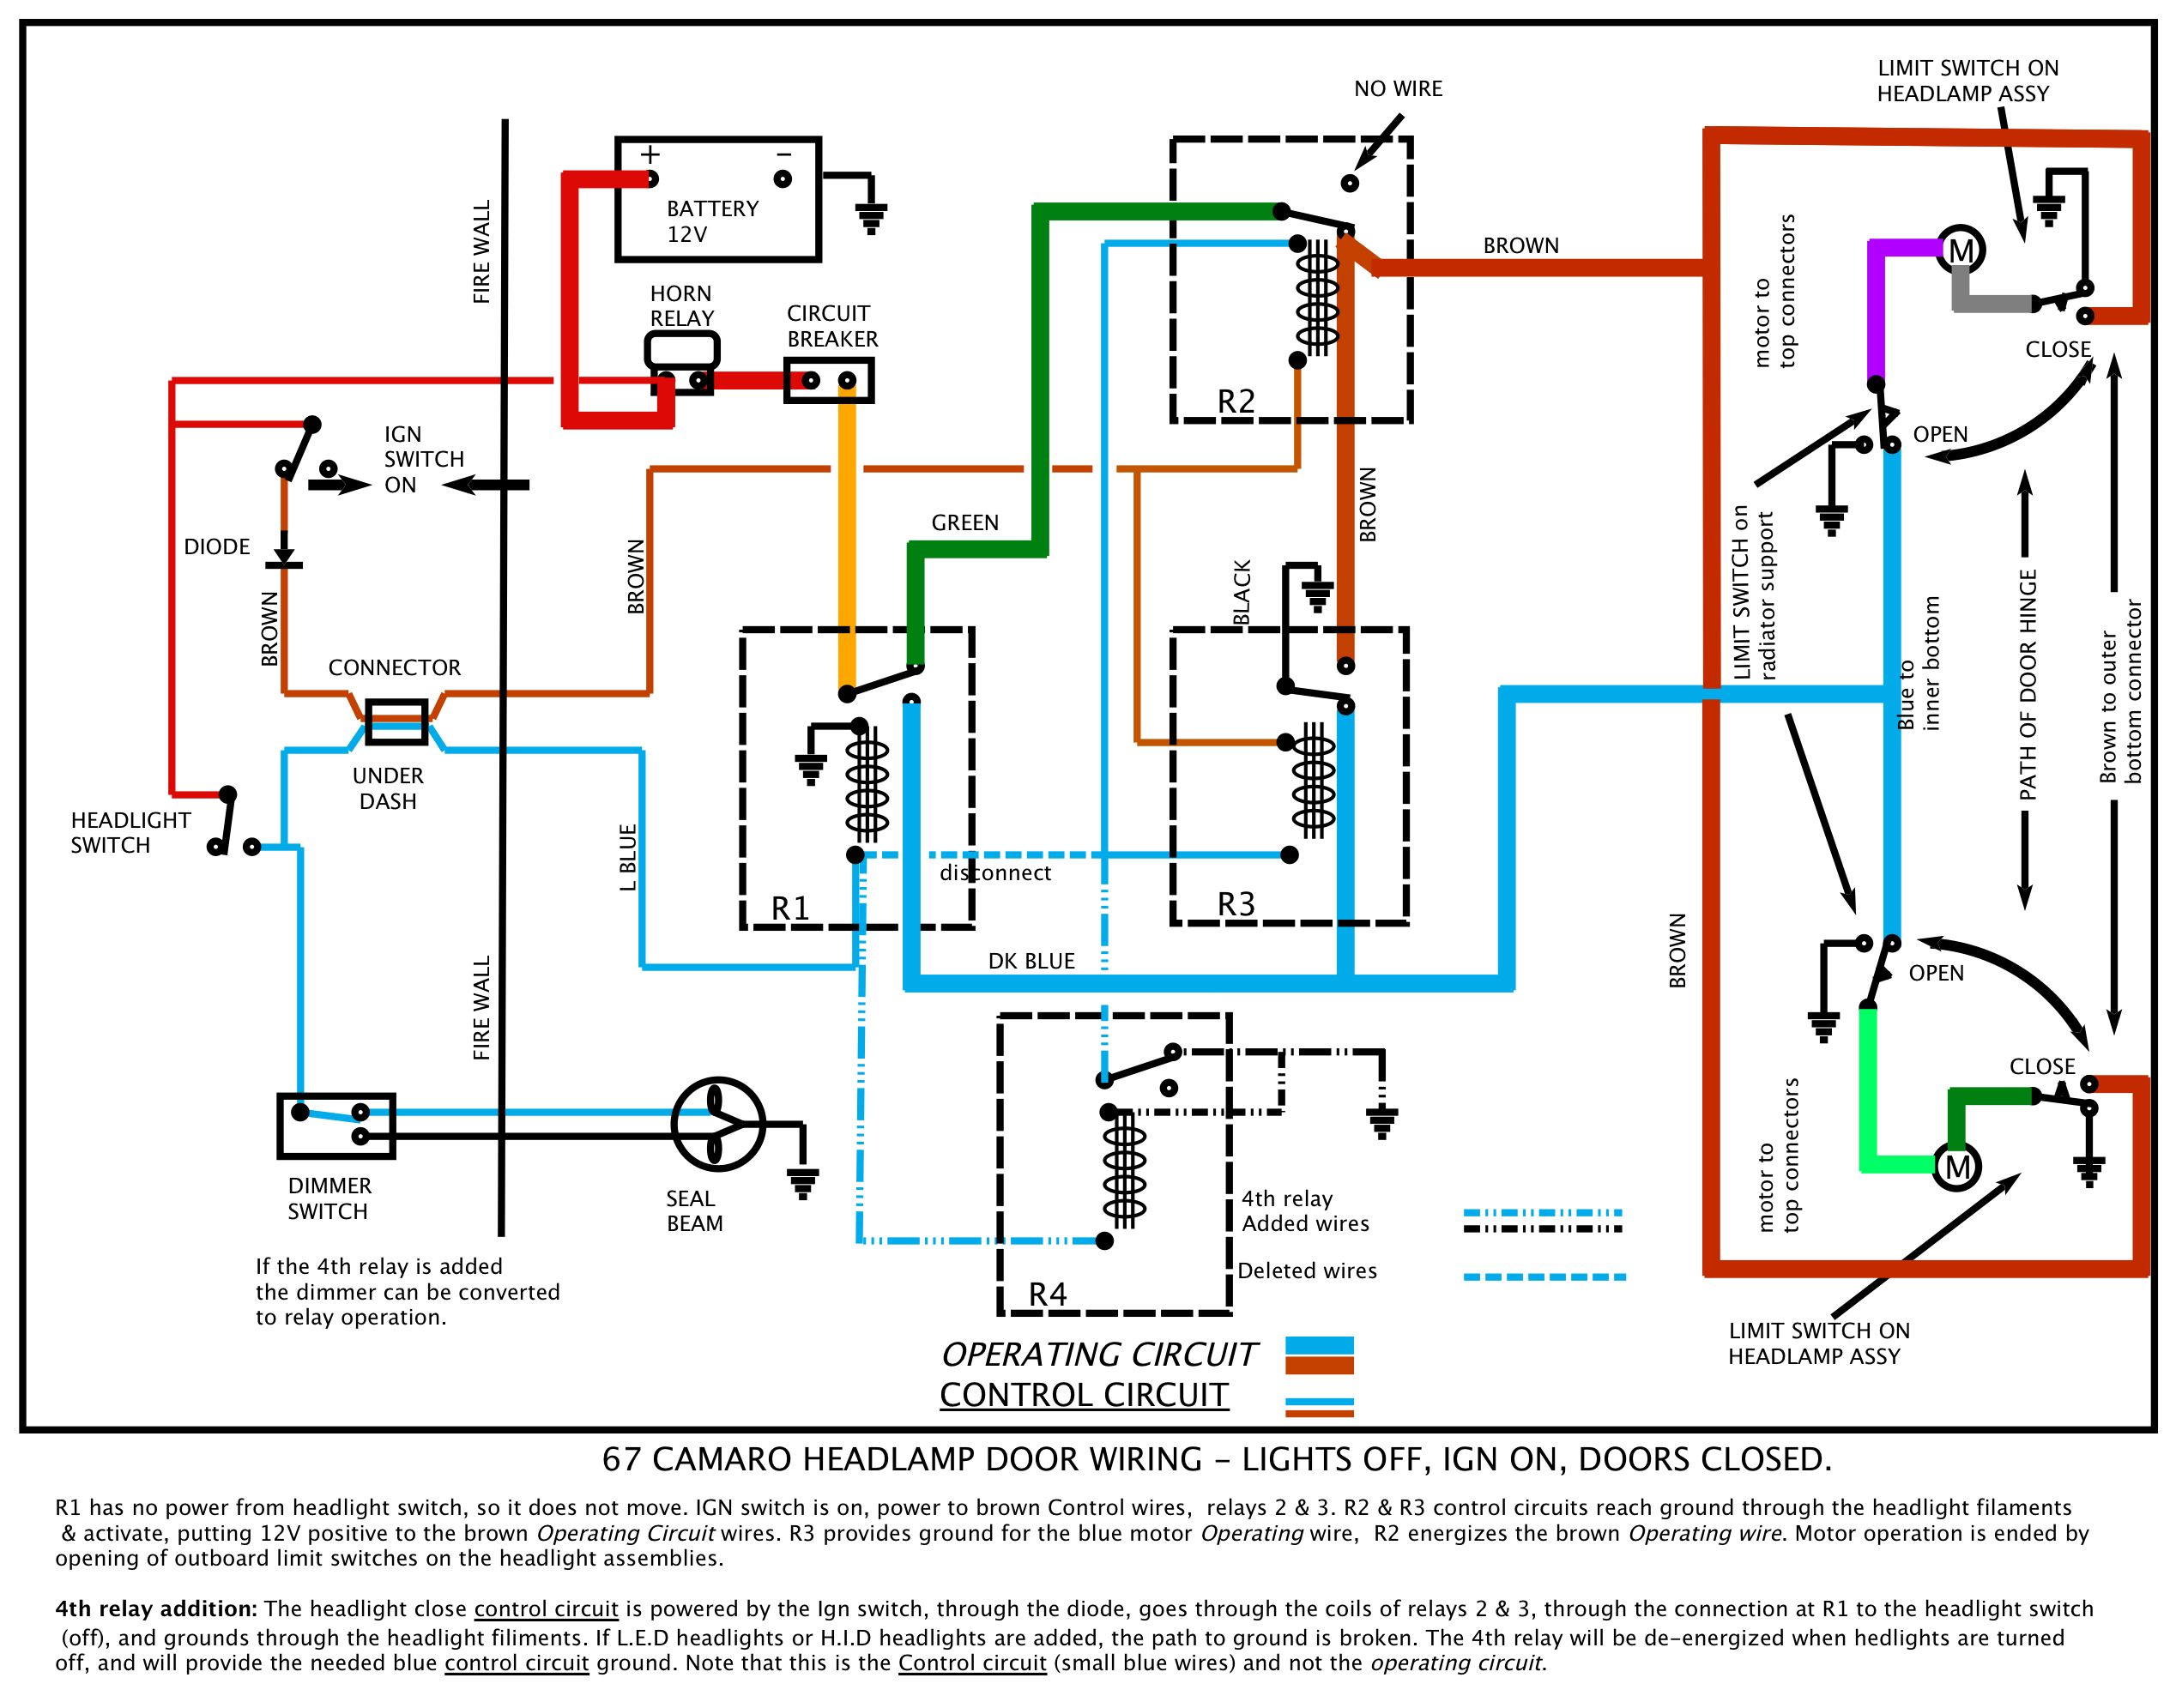 1968 camaro wiring diagram pdf - Dolap.magnetband.co on s10 wire harness, grand am wire harness, pt cruiser wire harness, mustang wire harness, porsche wire harness,